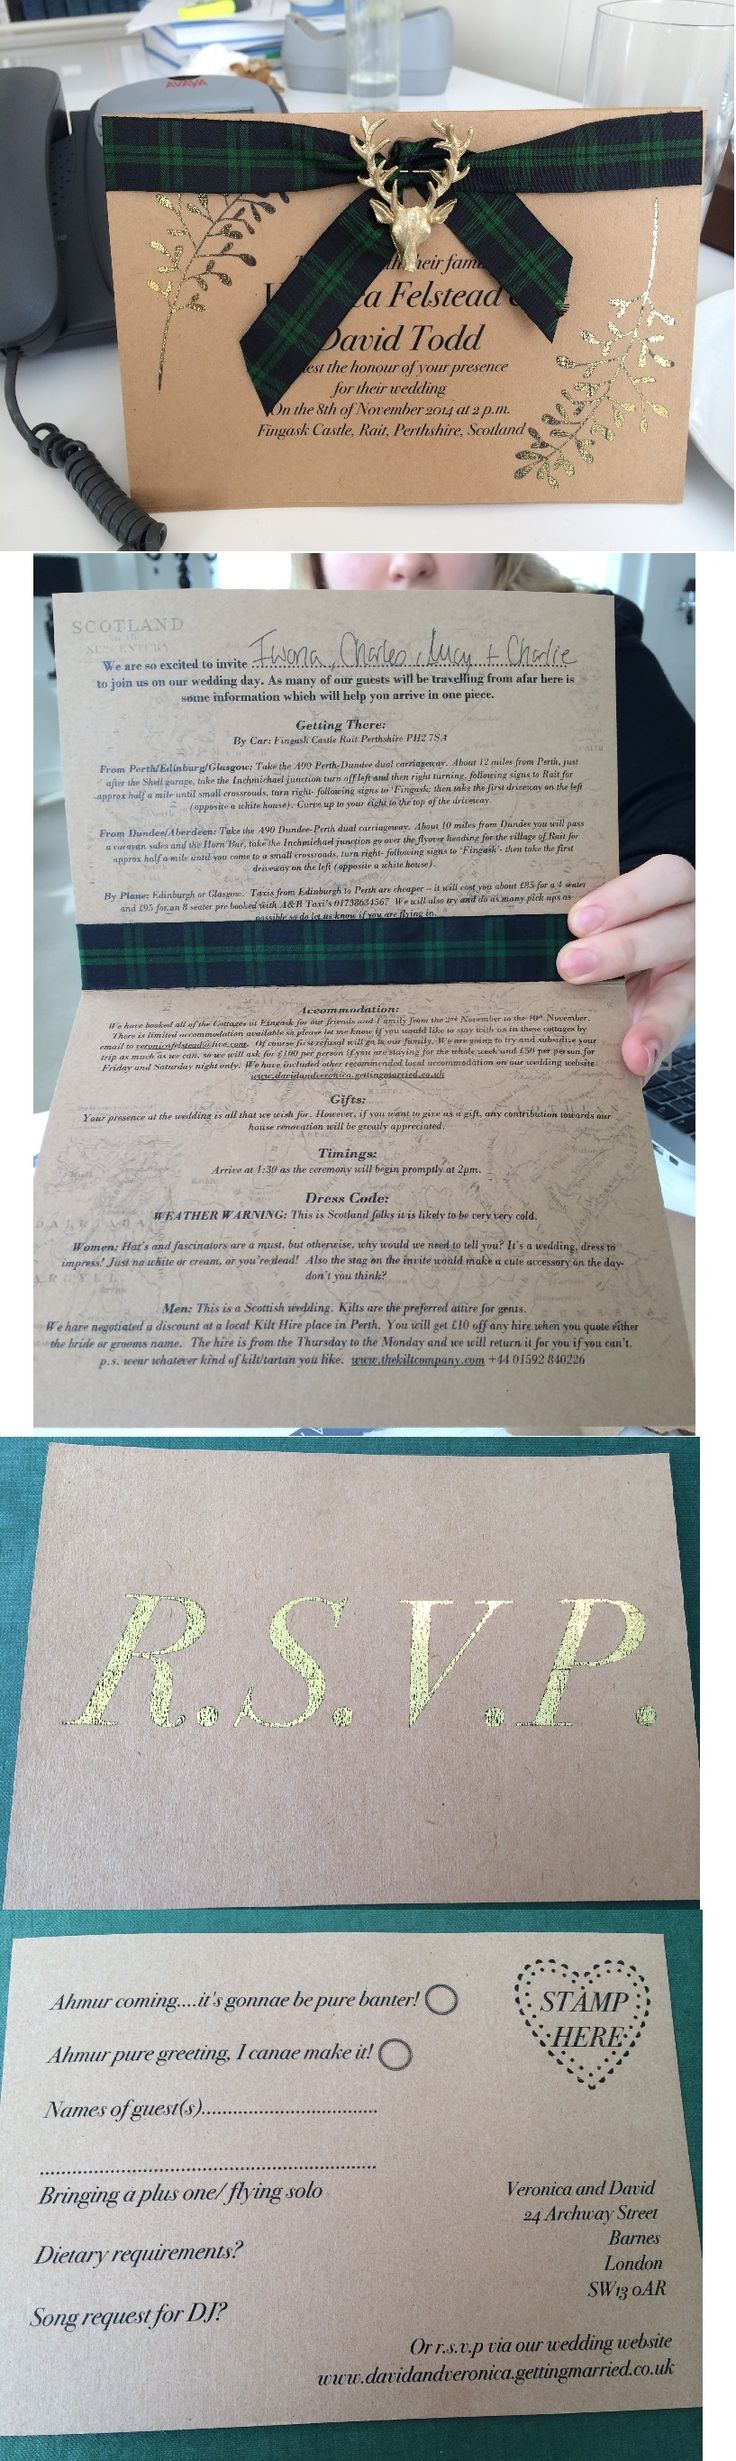 DIT Scottish Gold Wedding Invitation Black Watch Tartan. These wedding invitations are exactly the type of thing I'd want to go for.